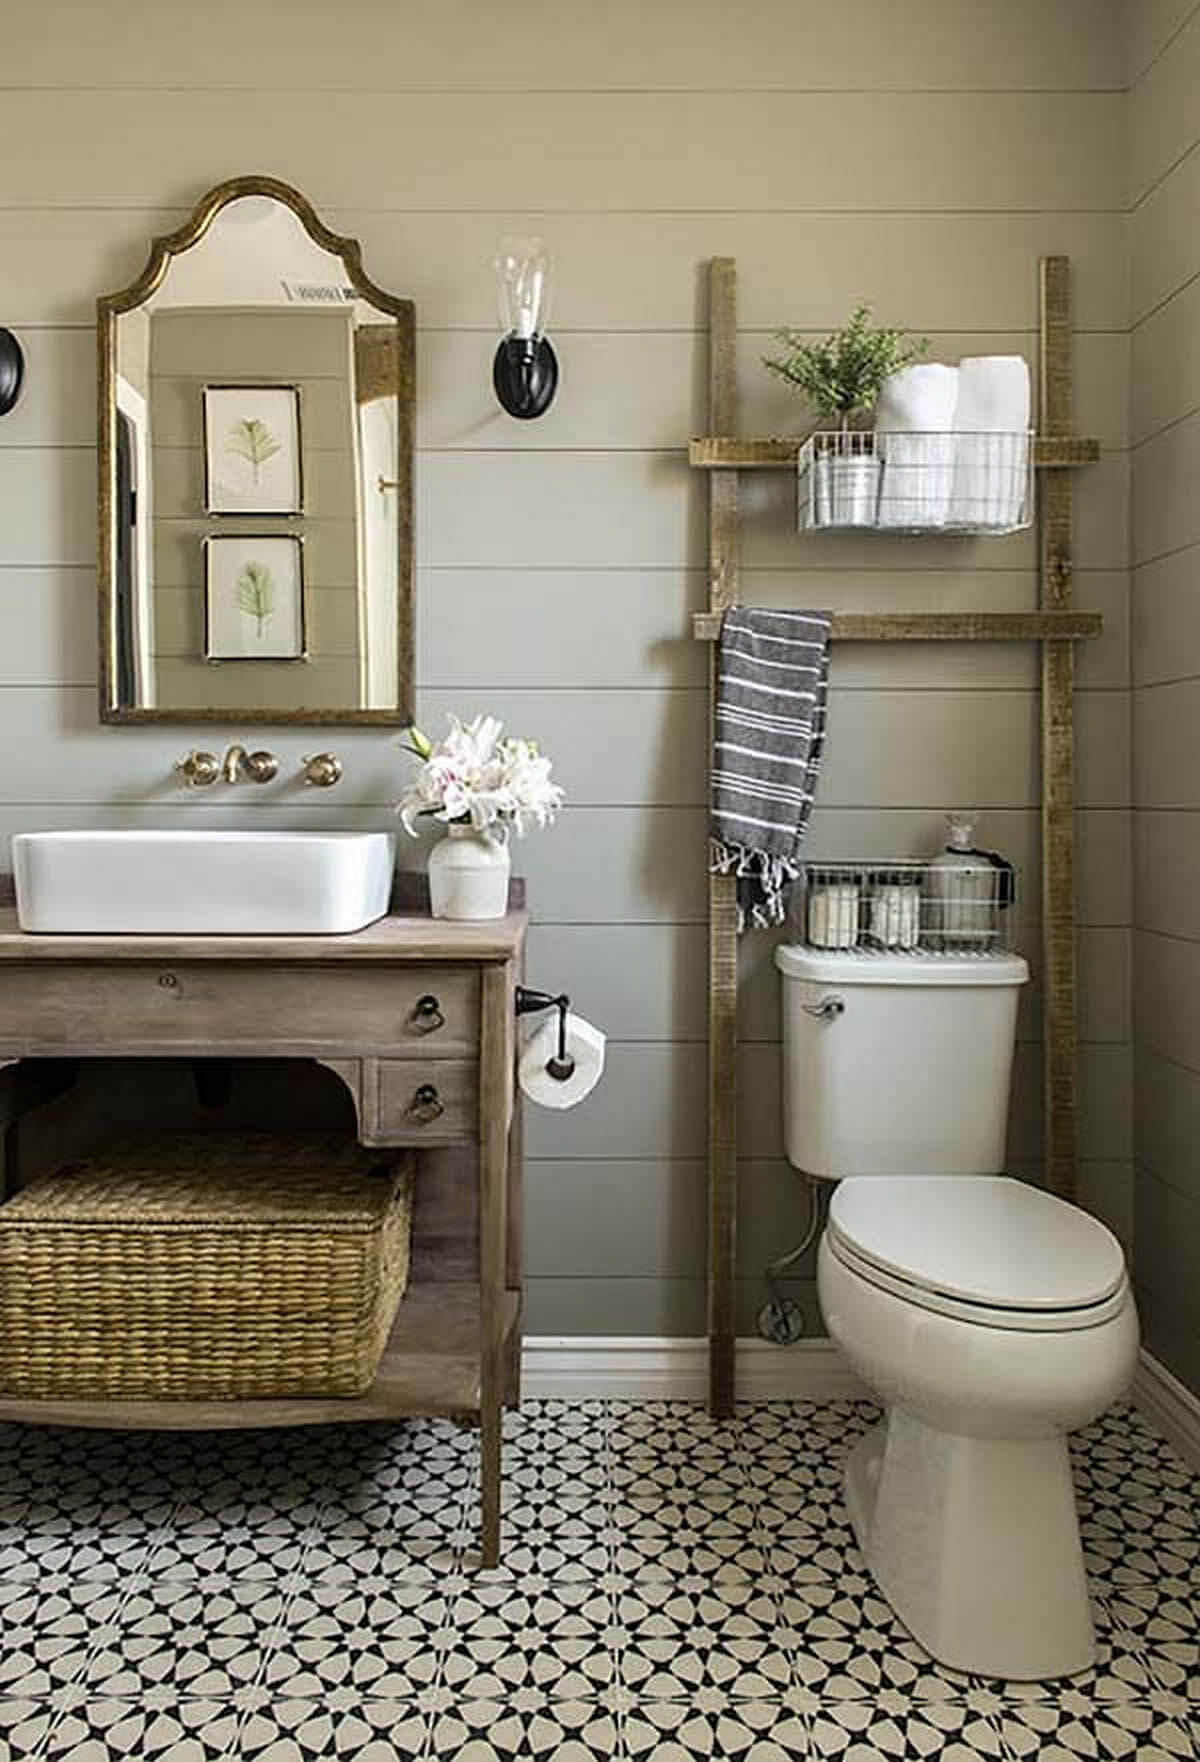 Delightful Farmhouse Bathroom Design With Wood Accents